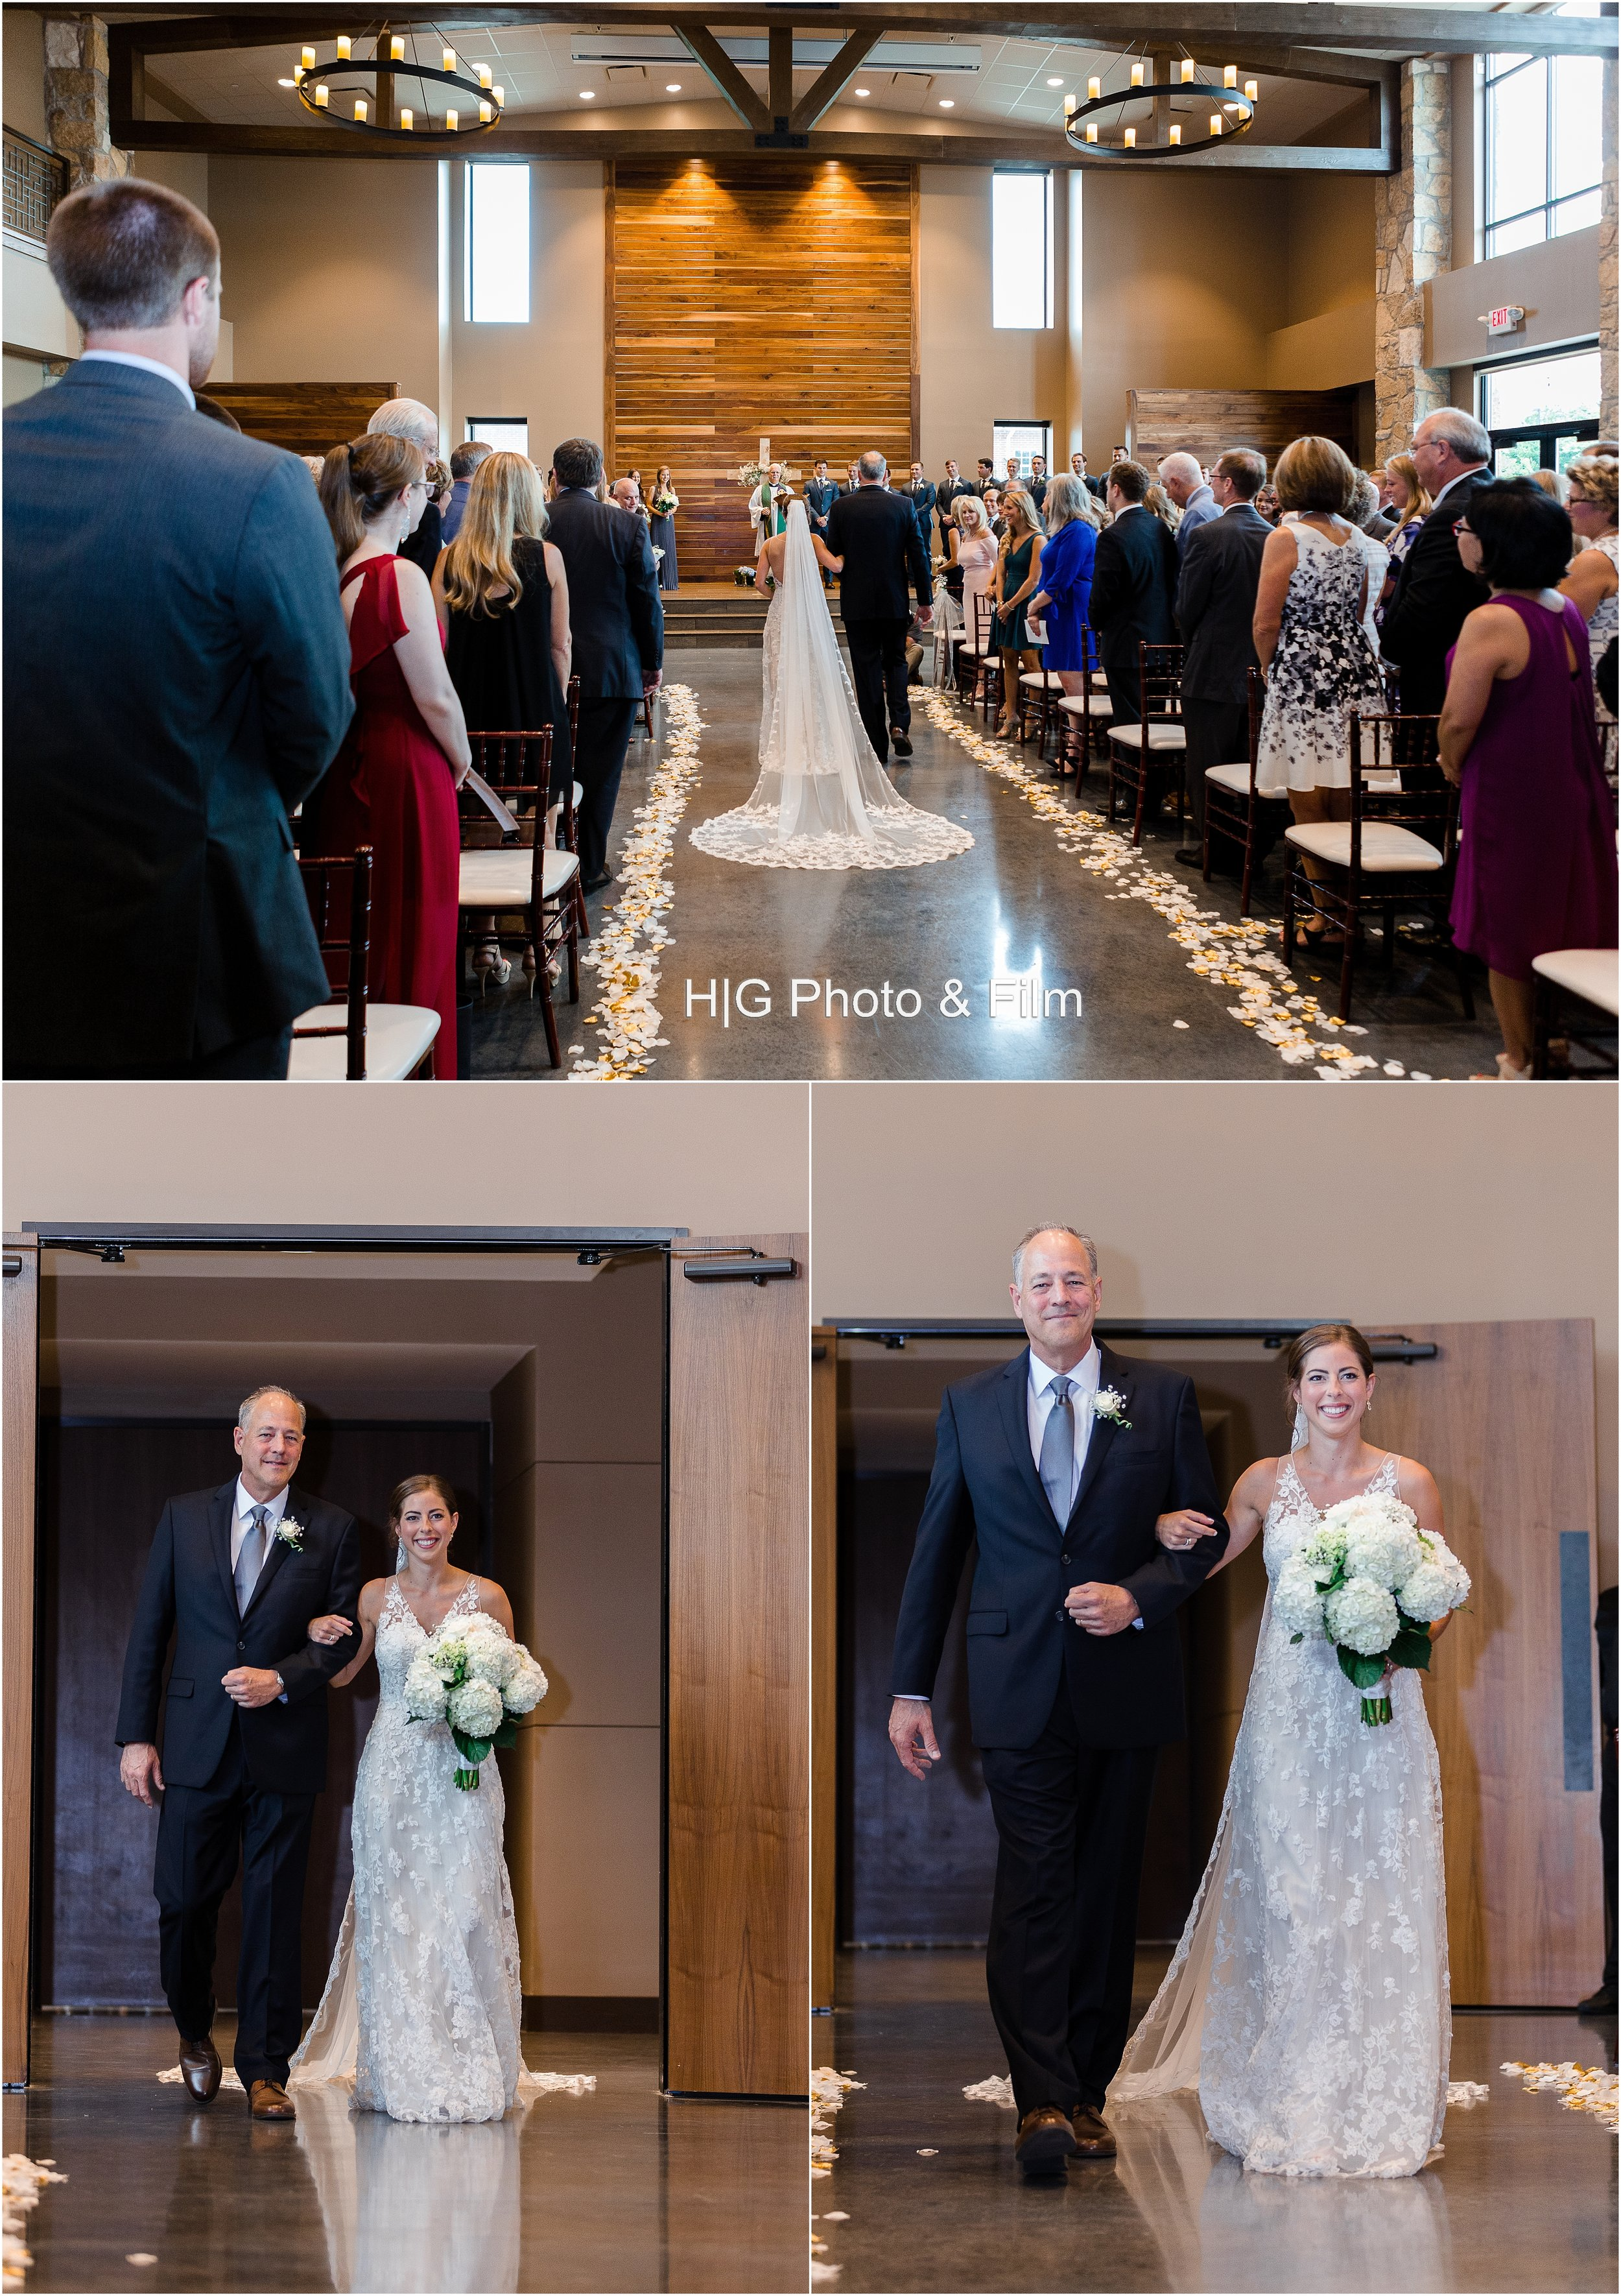 The beautiful bride and her father